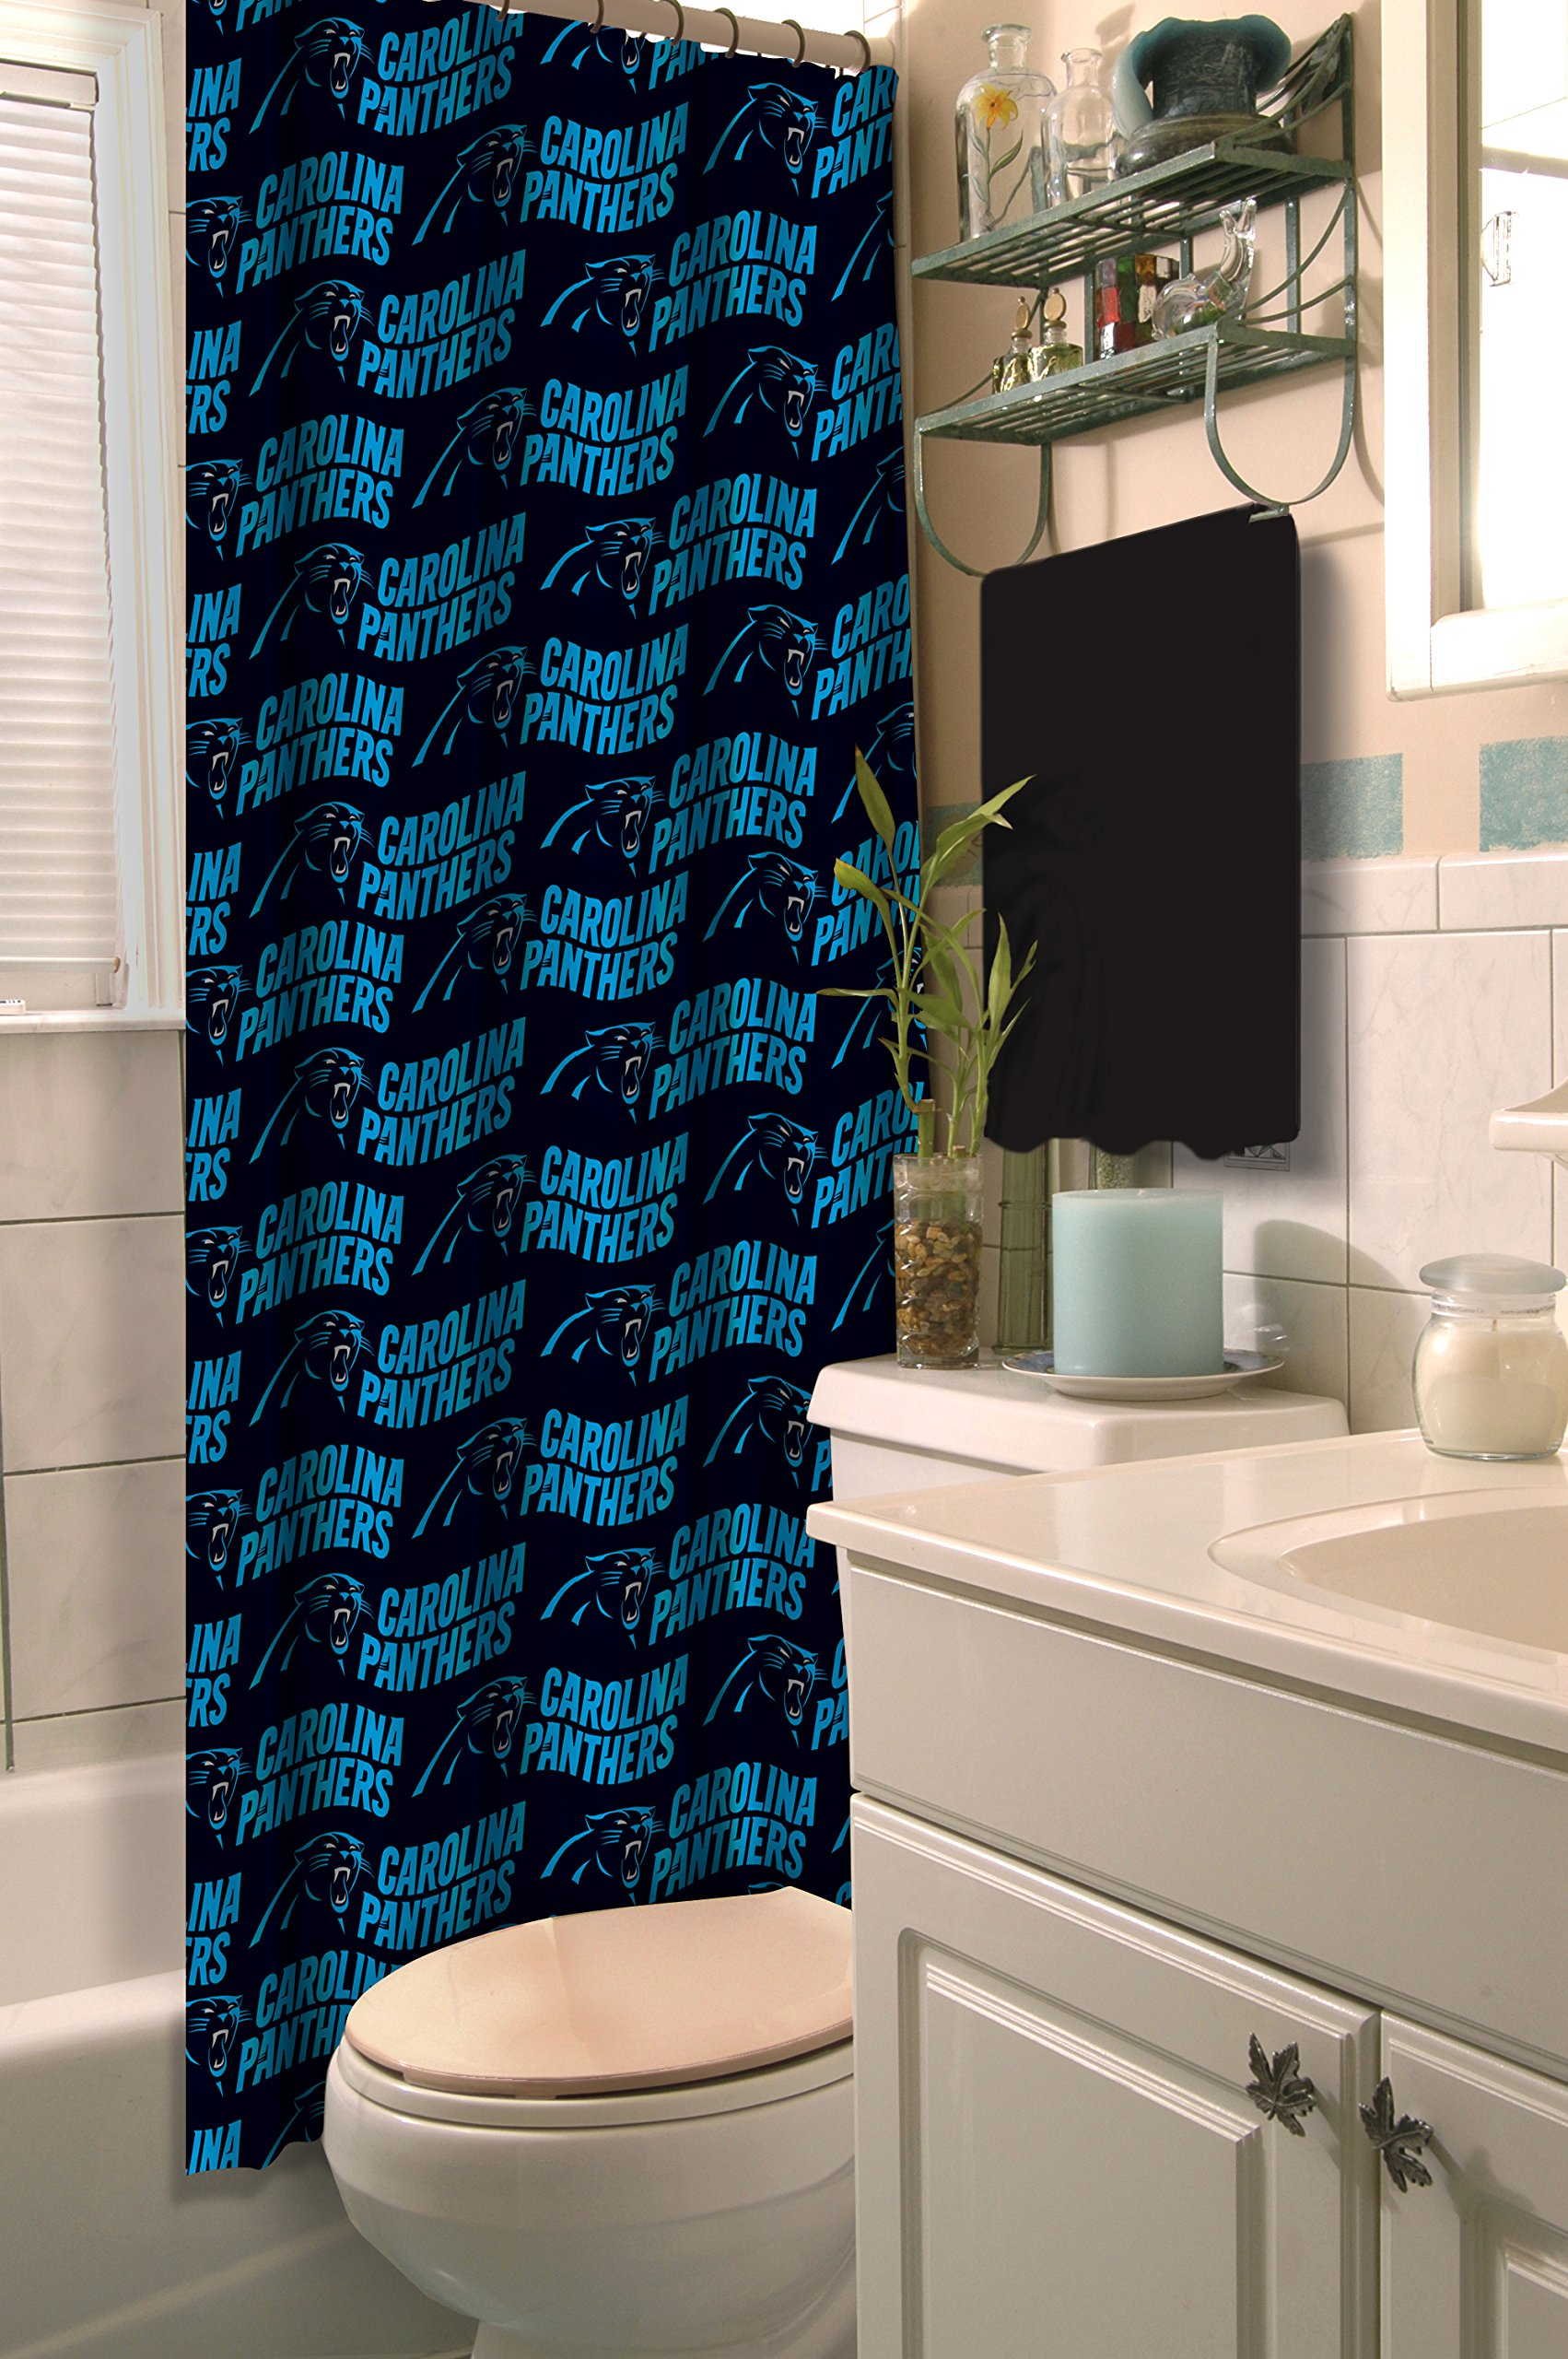 Officially Licensed NFL Carolina Panthers Shower Curtain, 72'' x 72'', Multi Color by The Northwest Company